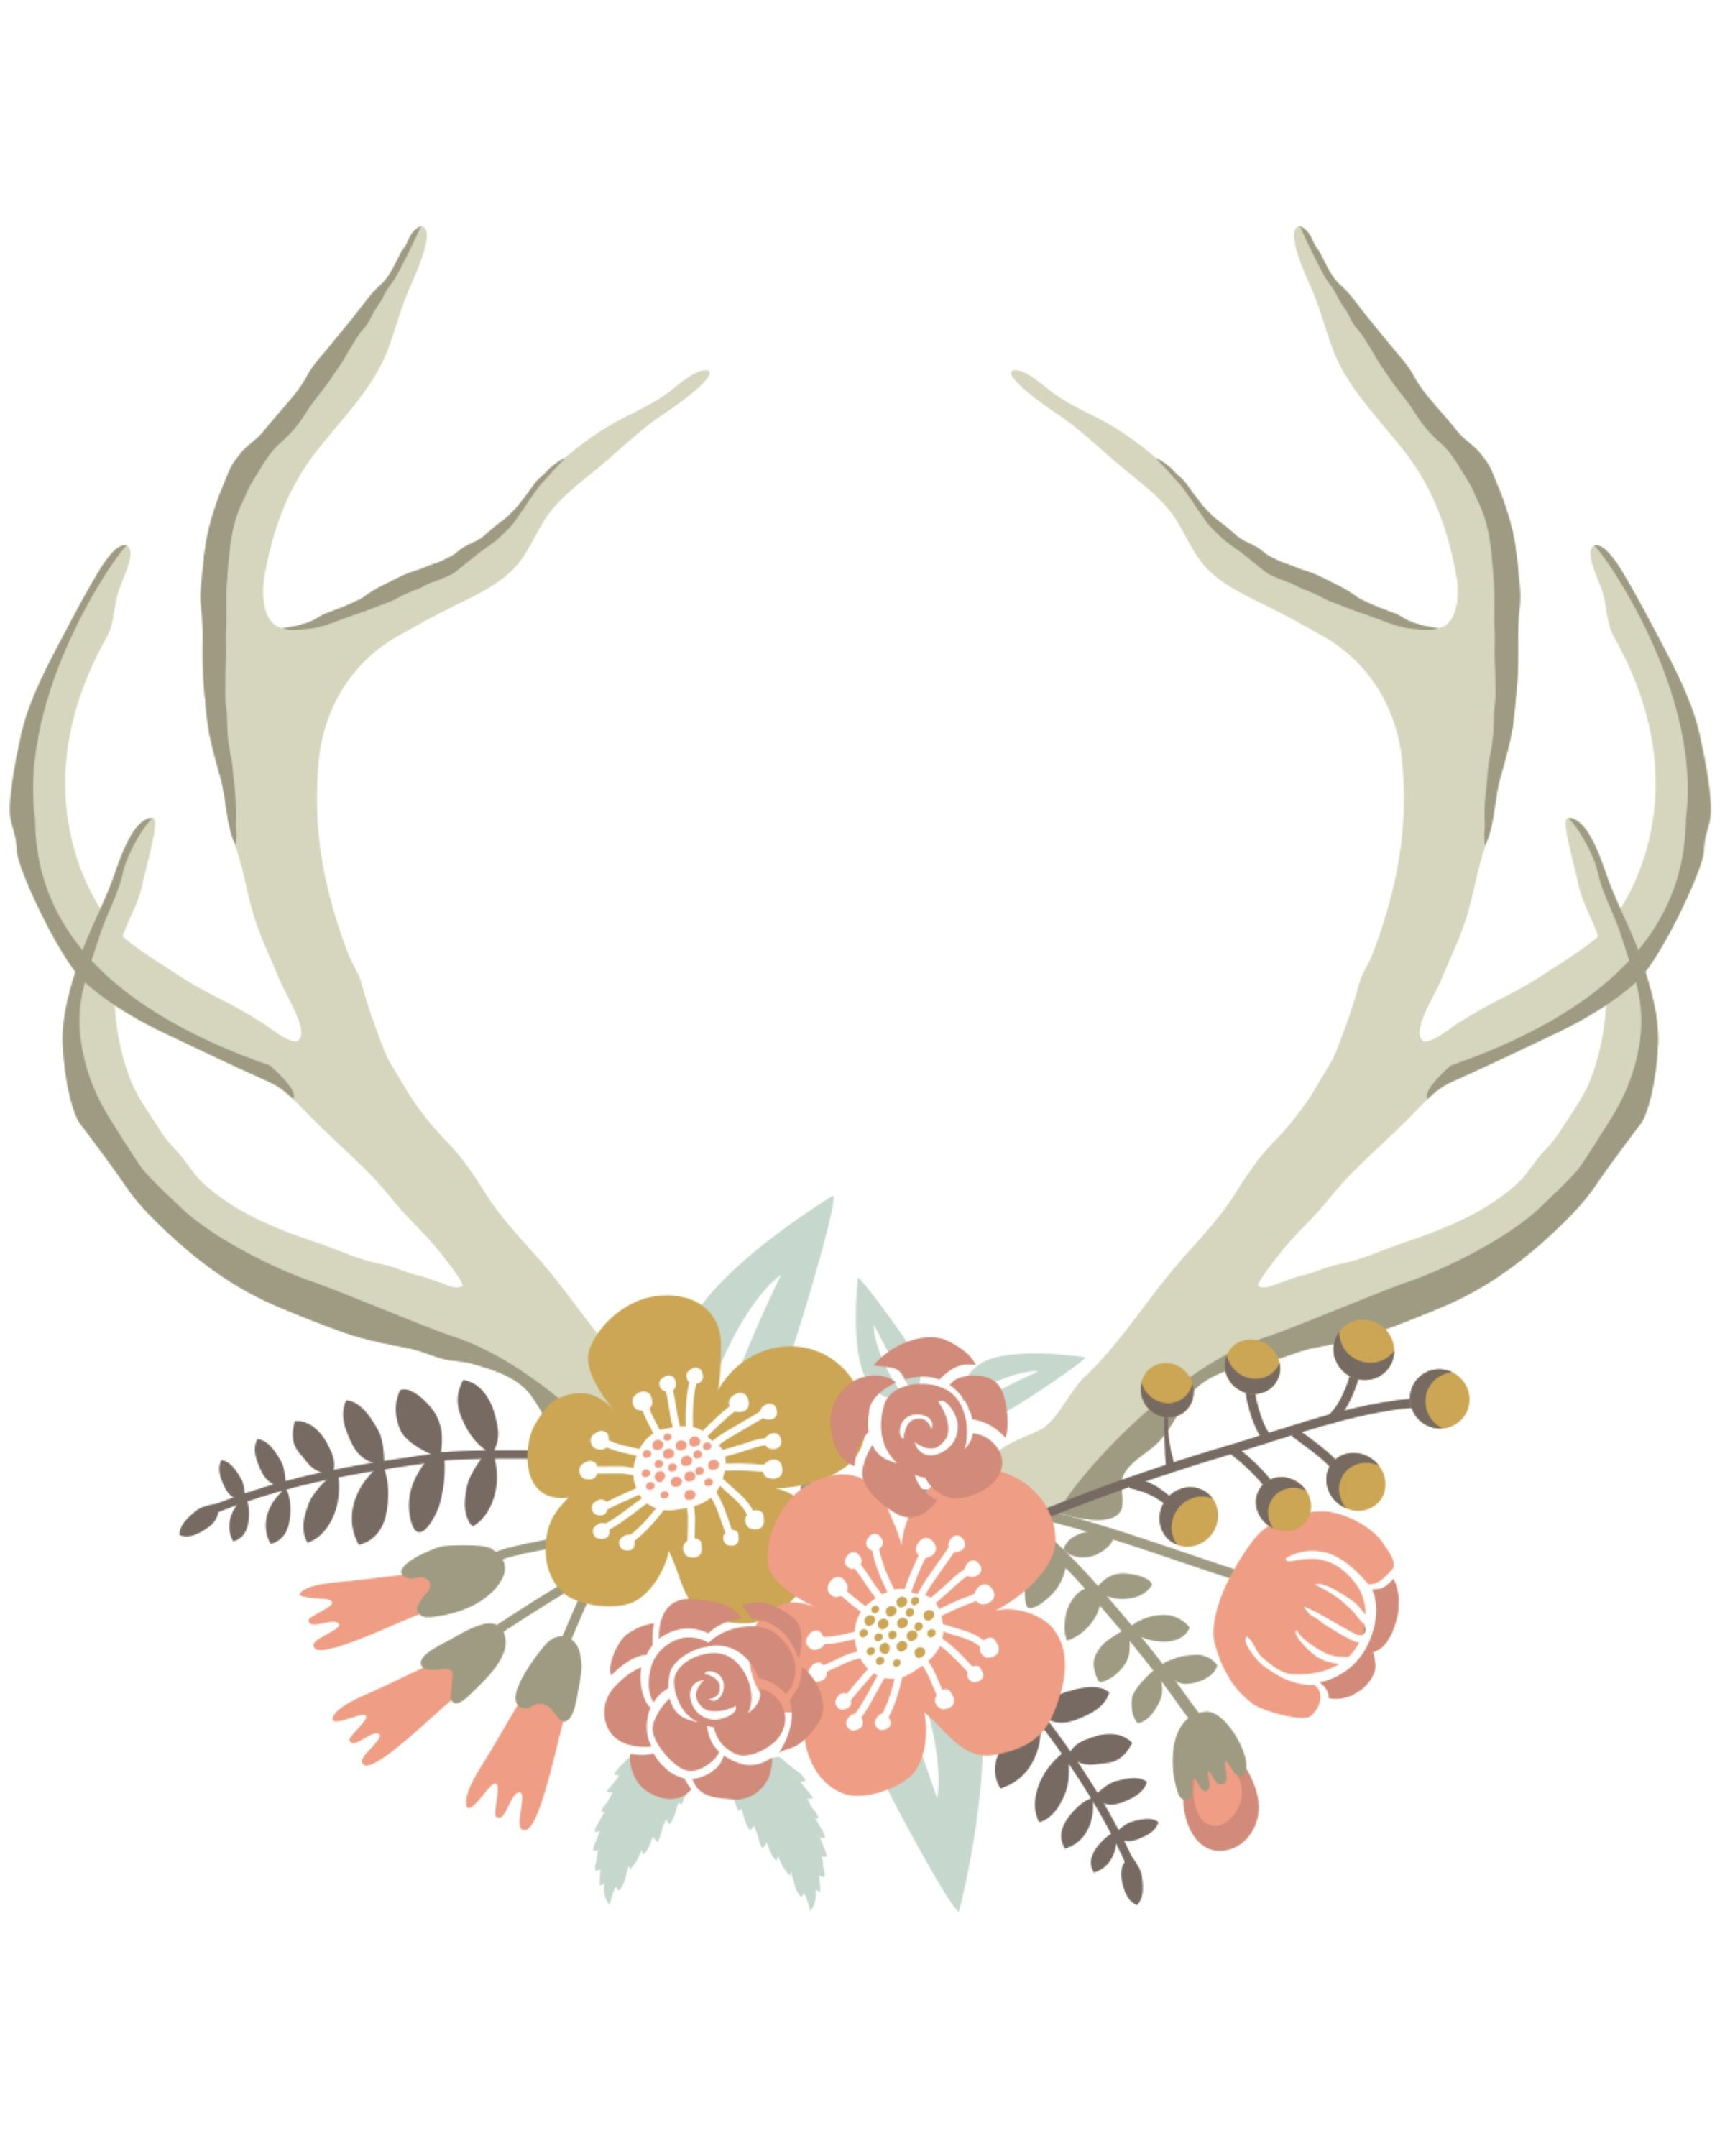 Floral Deer Crown Free Nursery Or Gallery Wall Printable